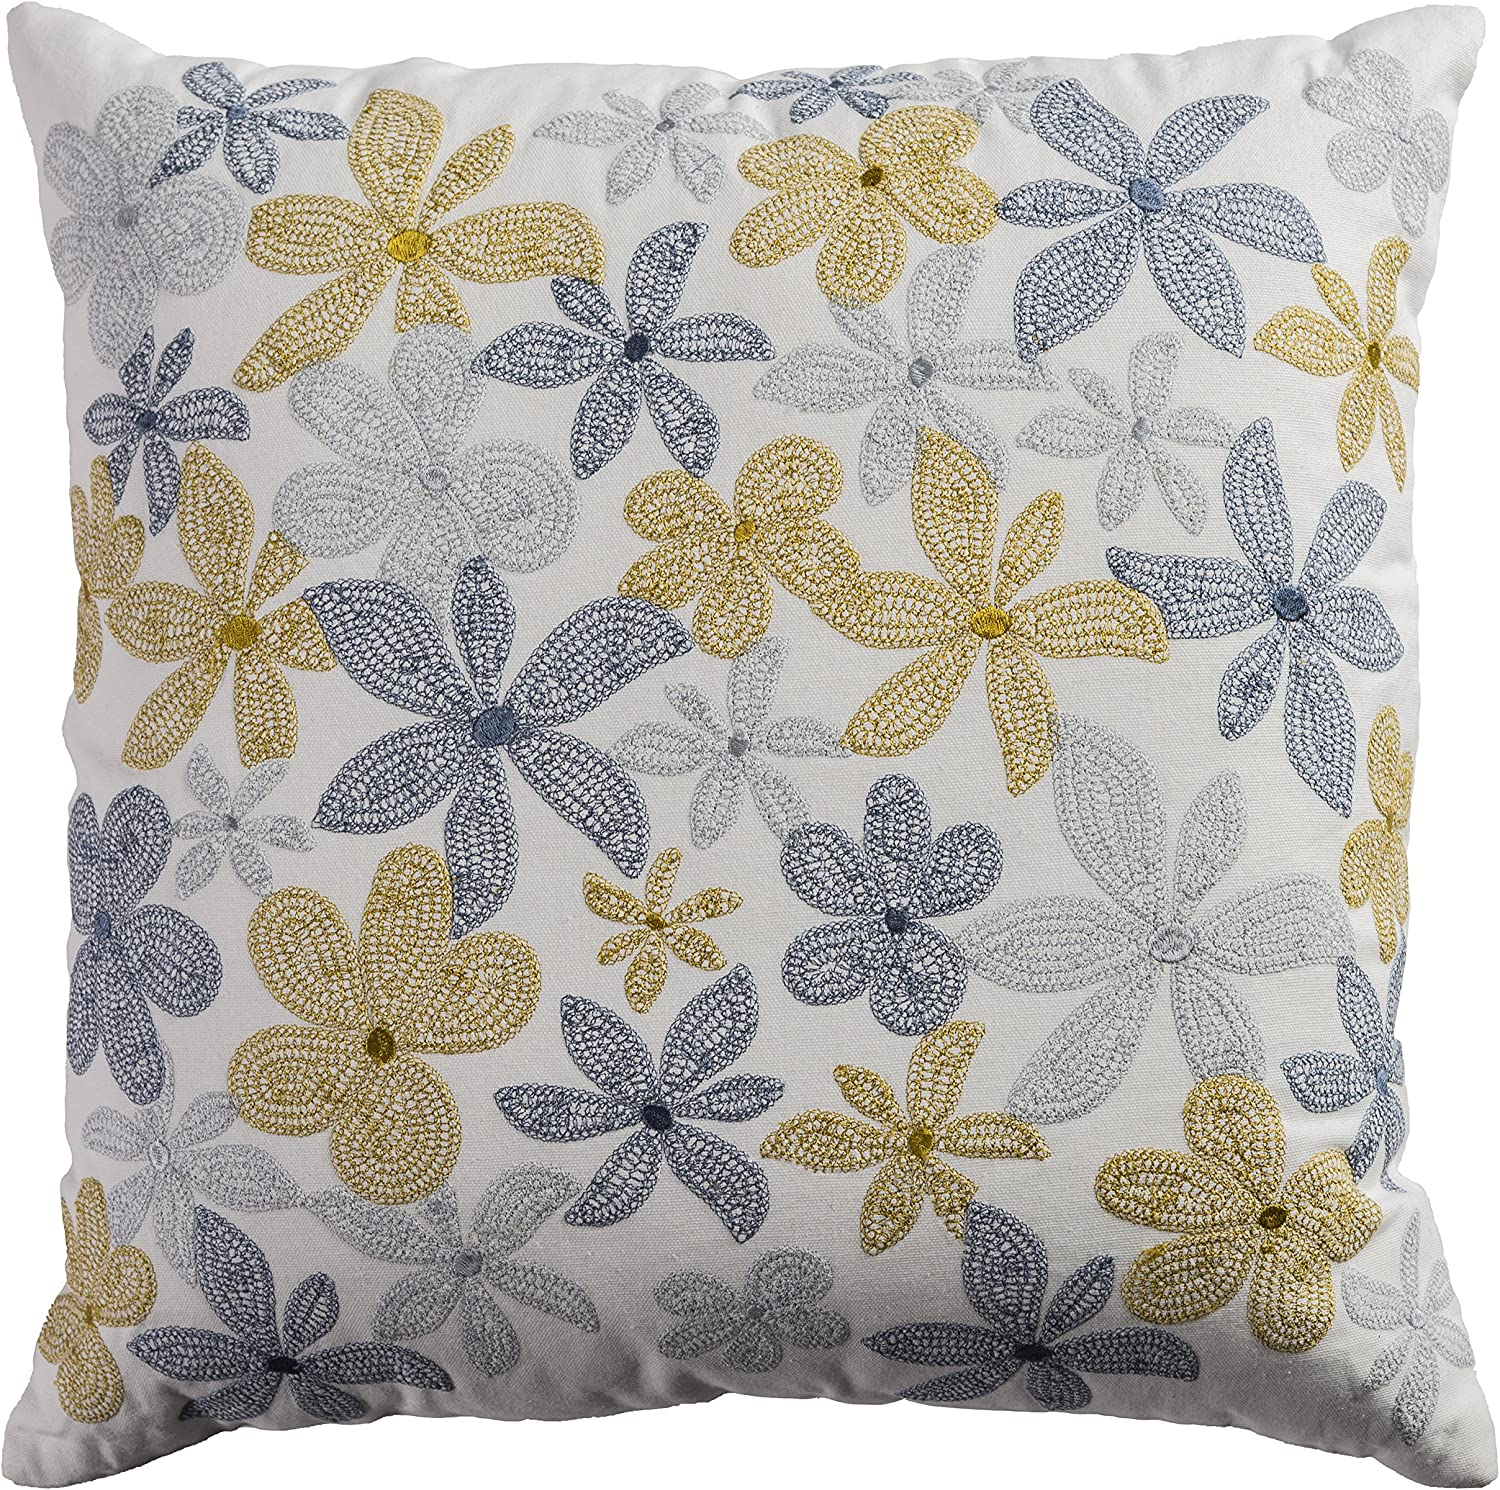 Rizzy Home One of a Kind Floral Decorative Pillow, Ivory